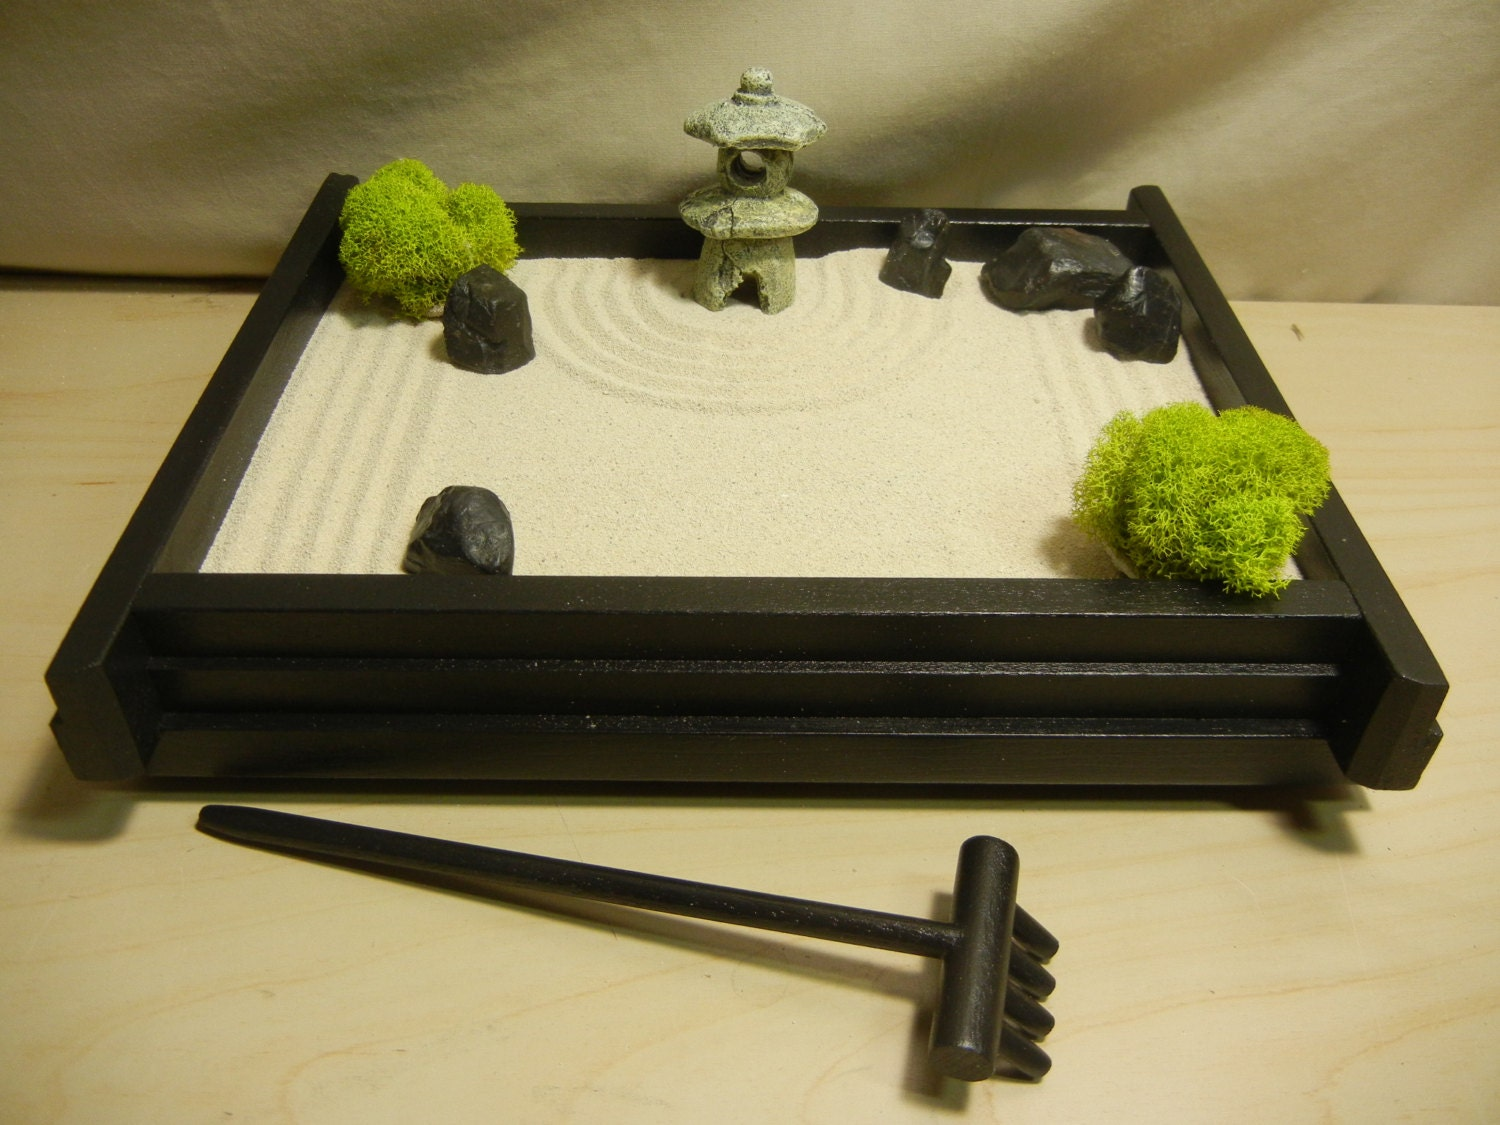 s03p small desk or table top zen garden with pagoda lantern ForTable Zen Garden